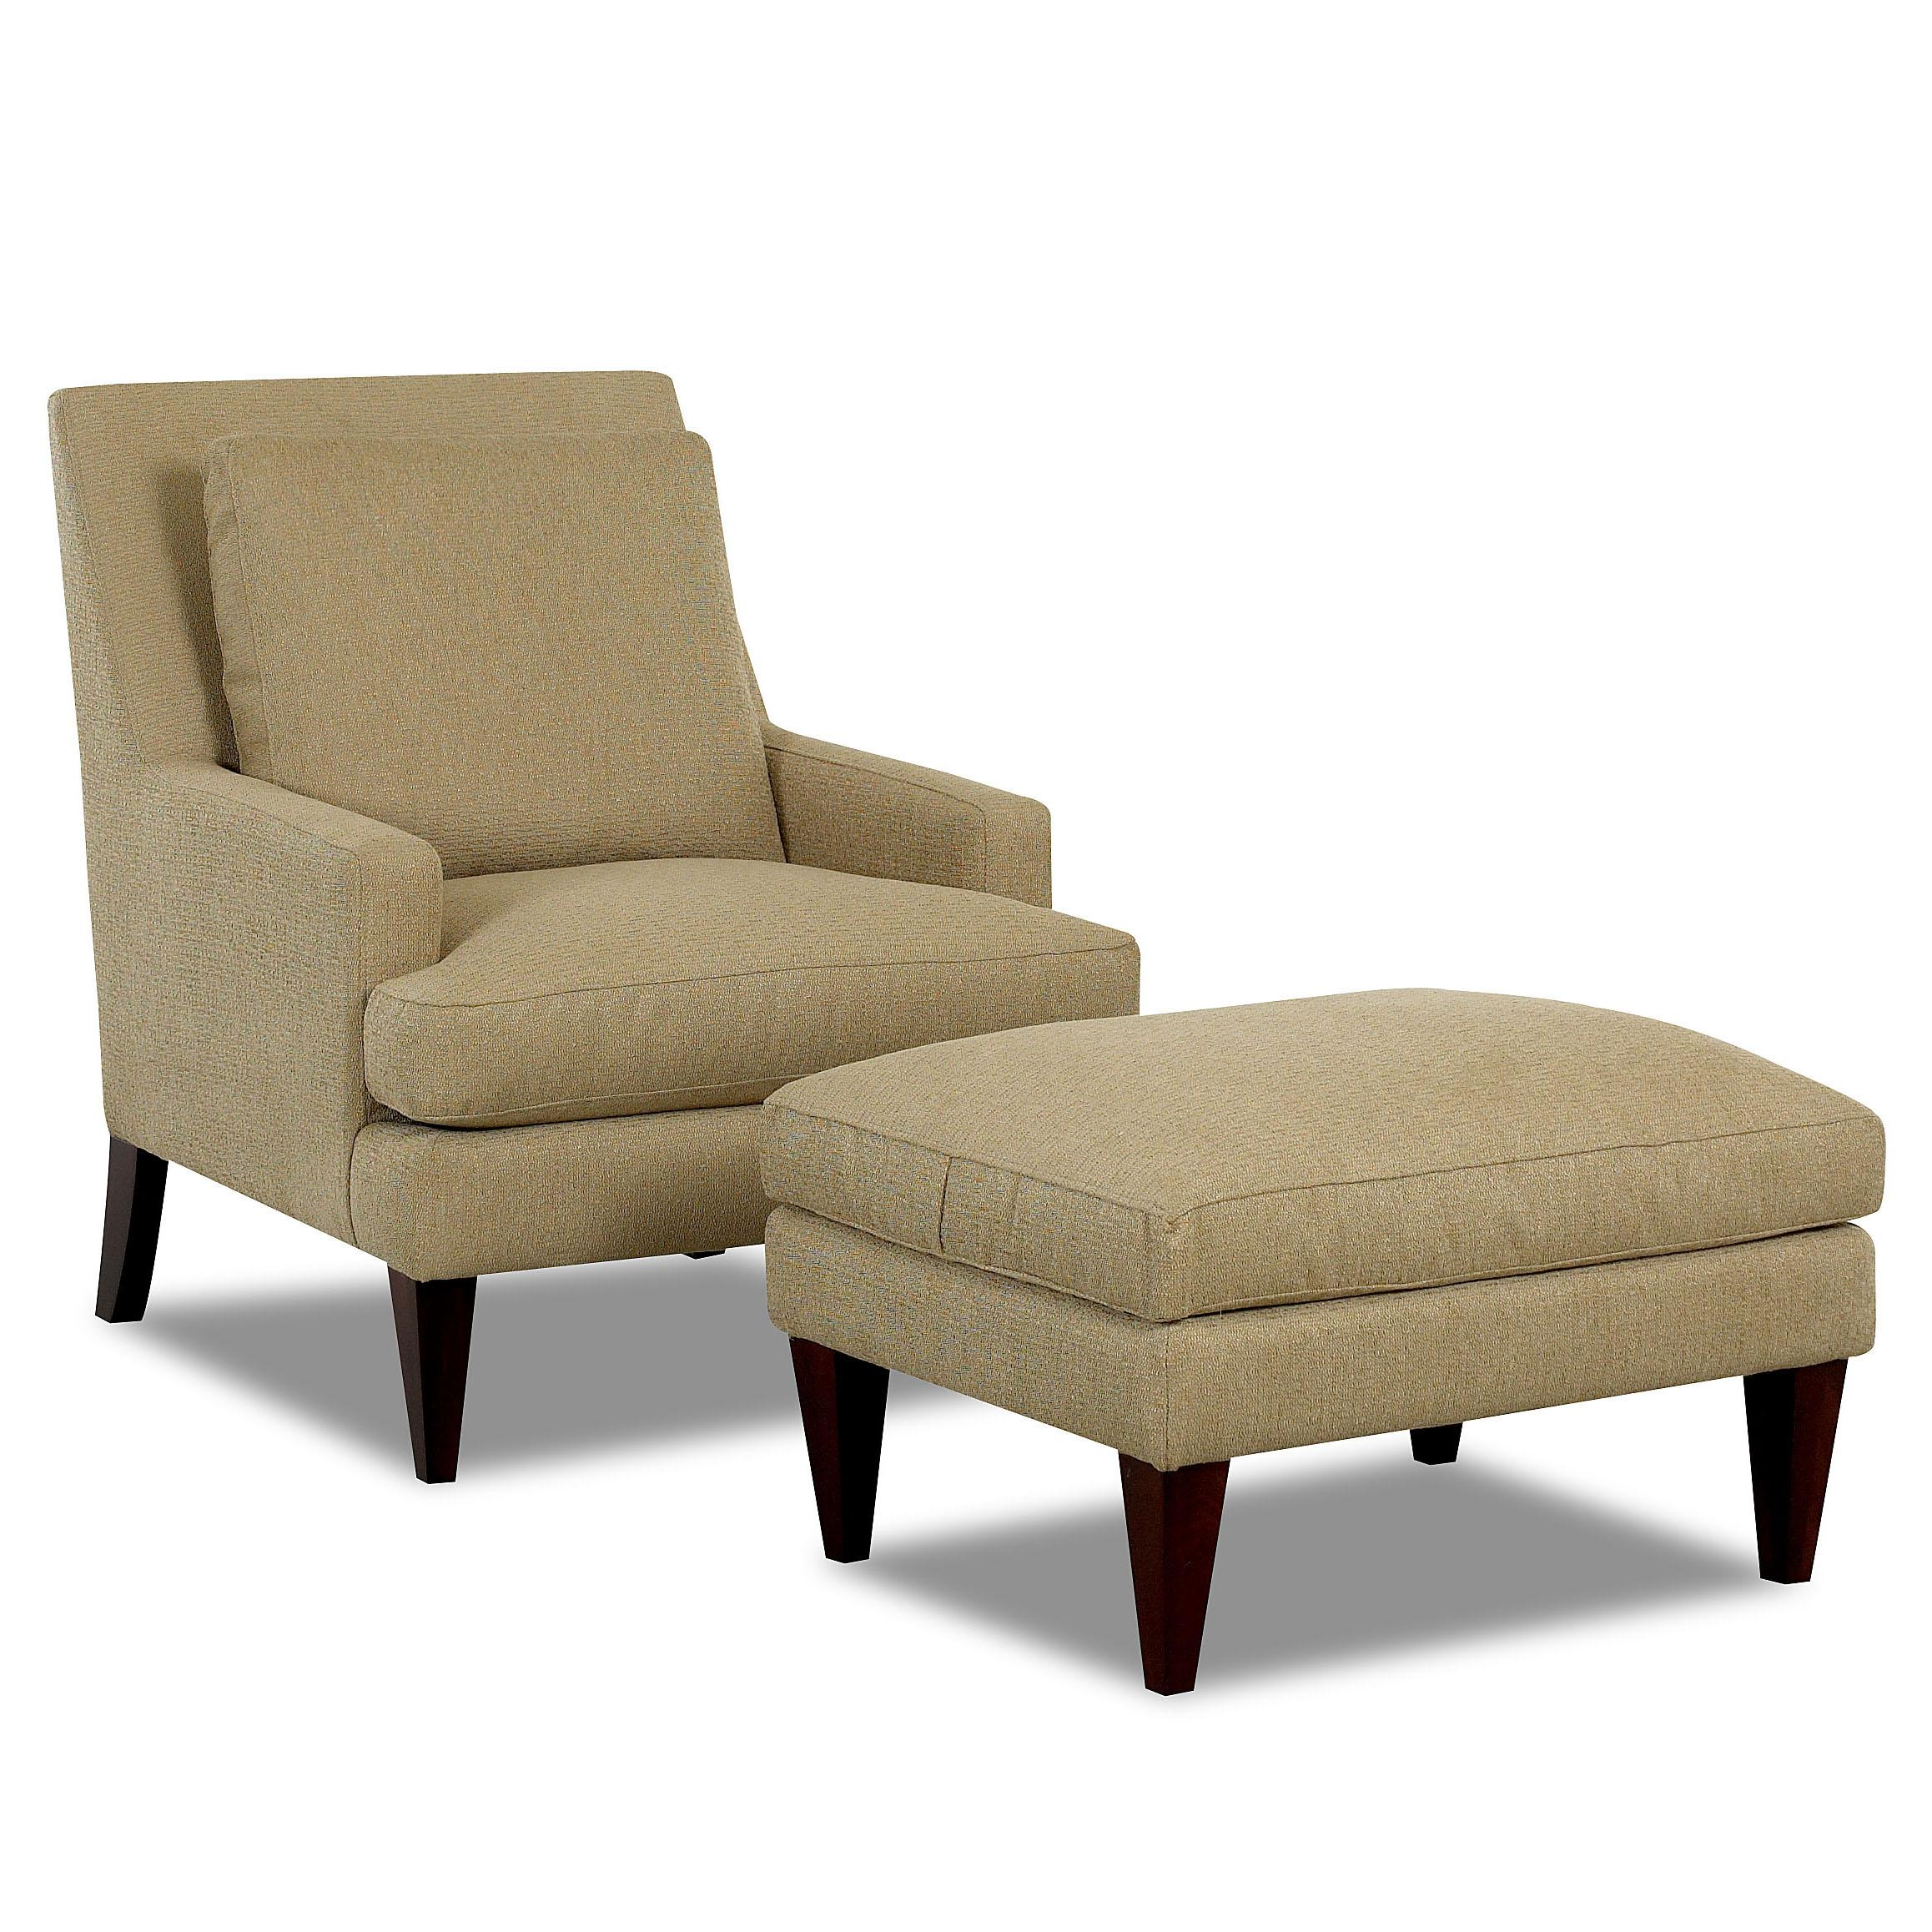 Chair And Ottoman Klaussner Chairs And Accents Townsend Accent Chair And